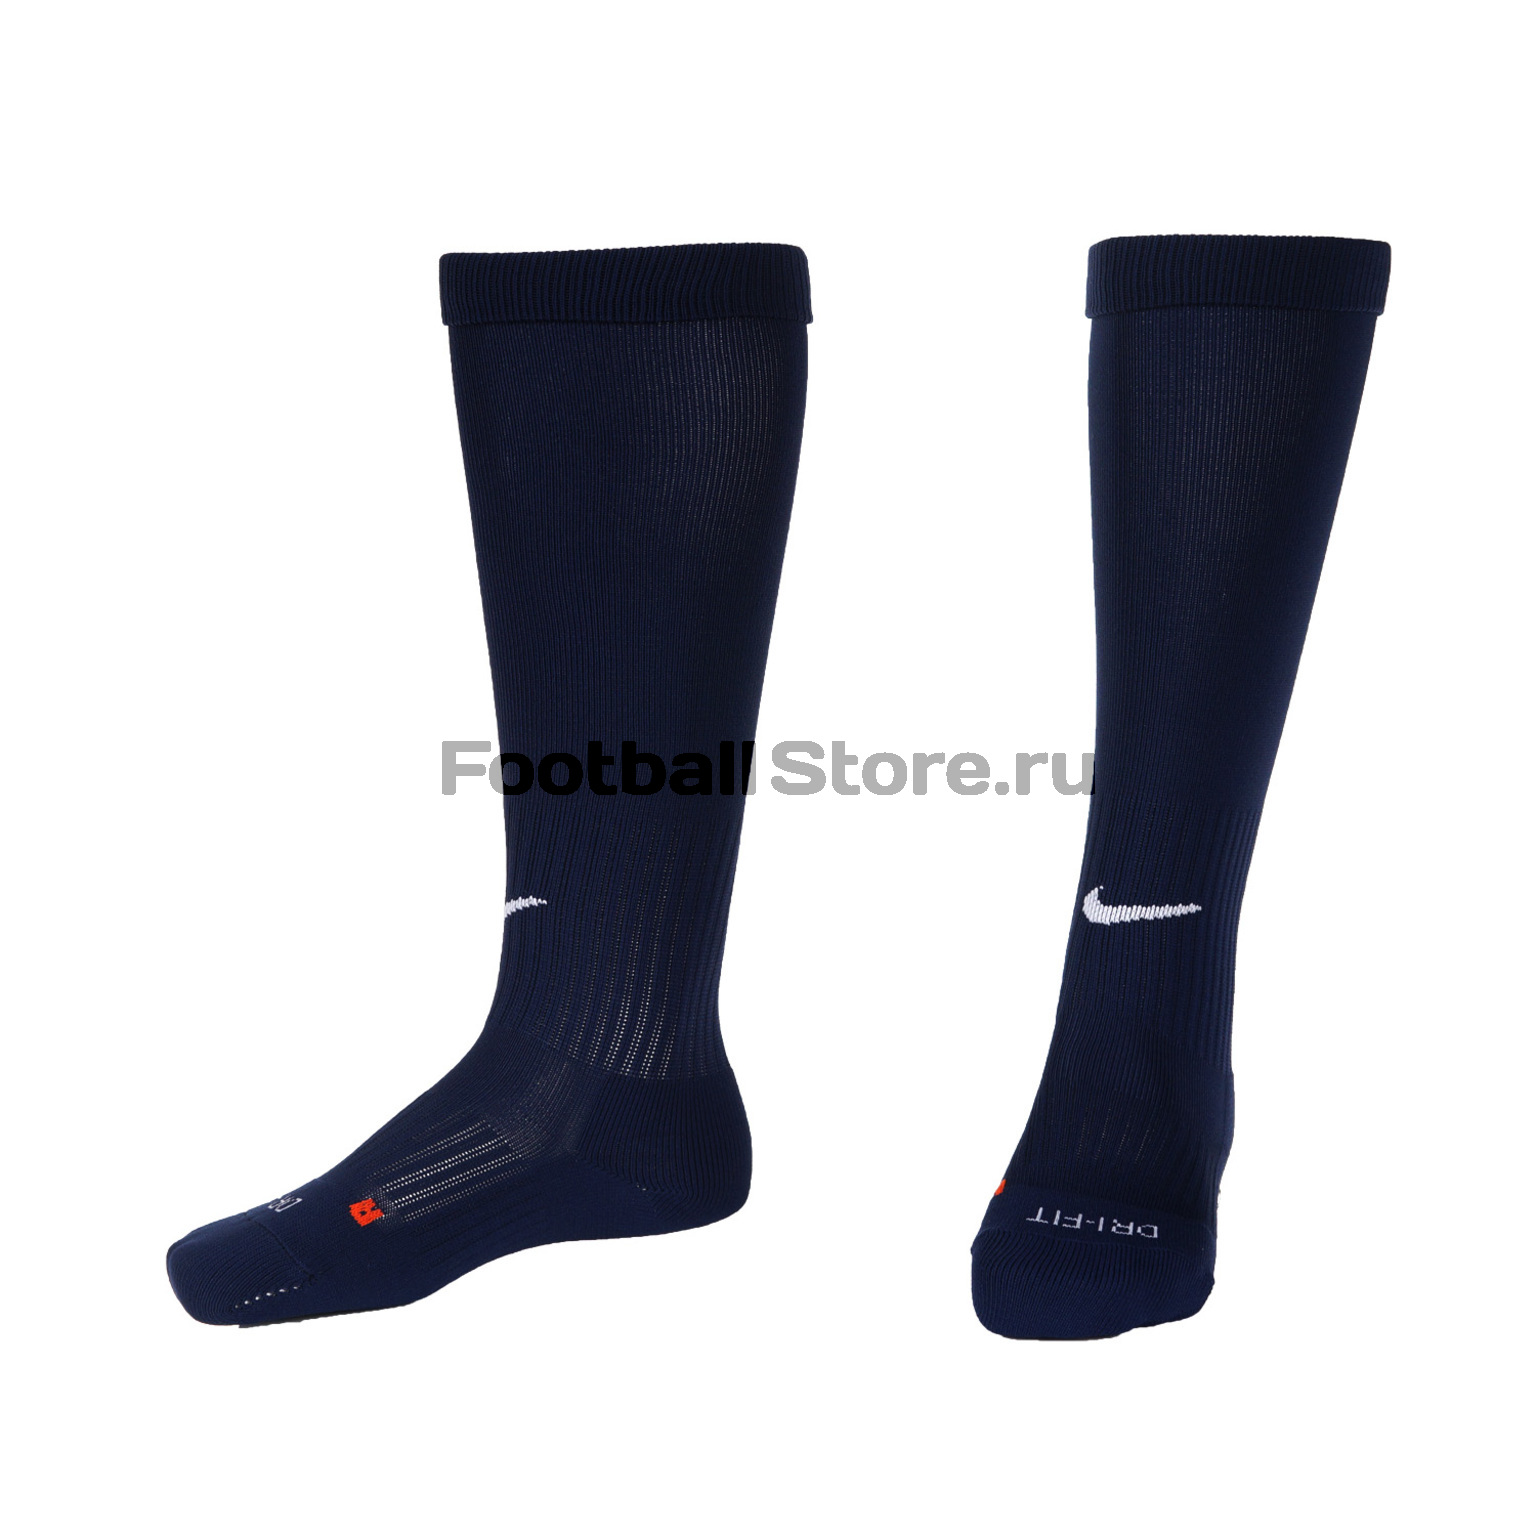 Гетры Nike Classic Football Dri-Fit SX4120-401 nike гетры nike classic ii sock 394386 670